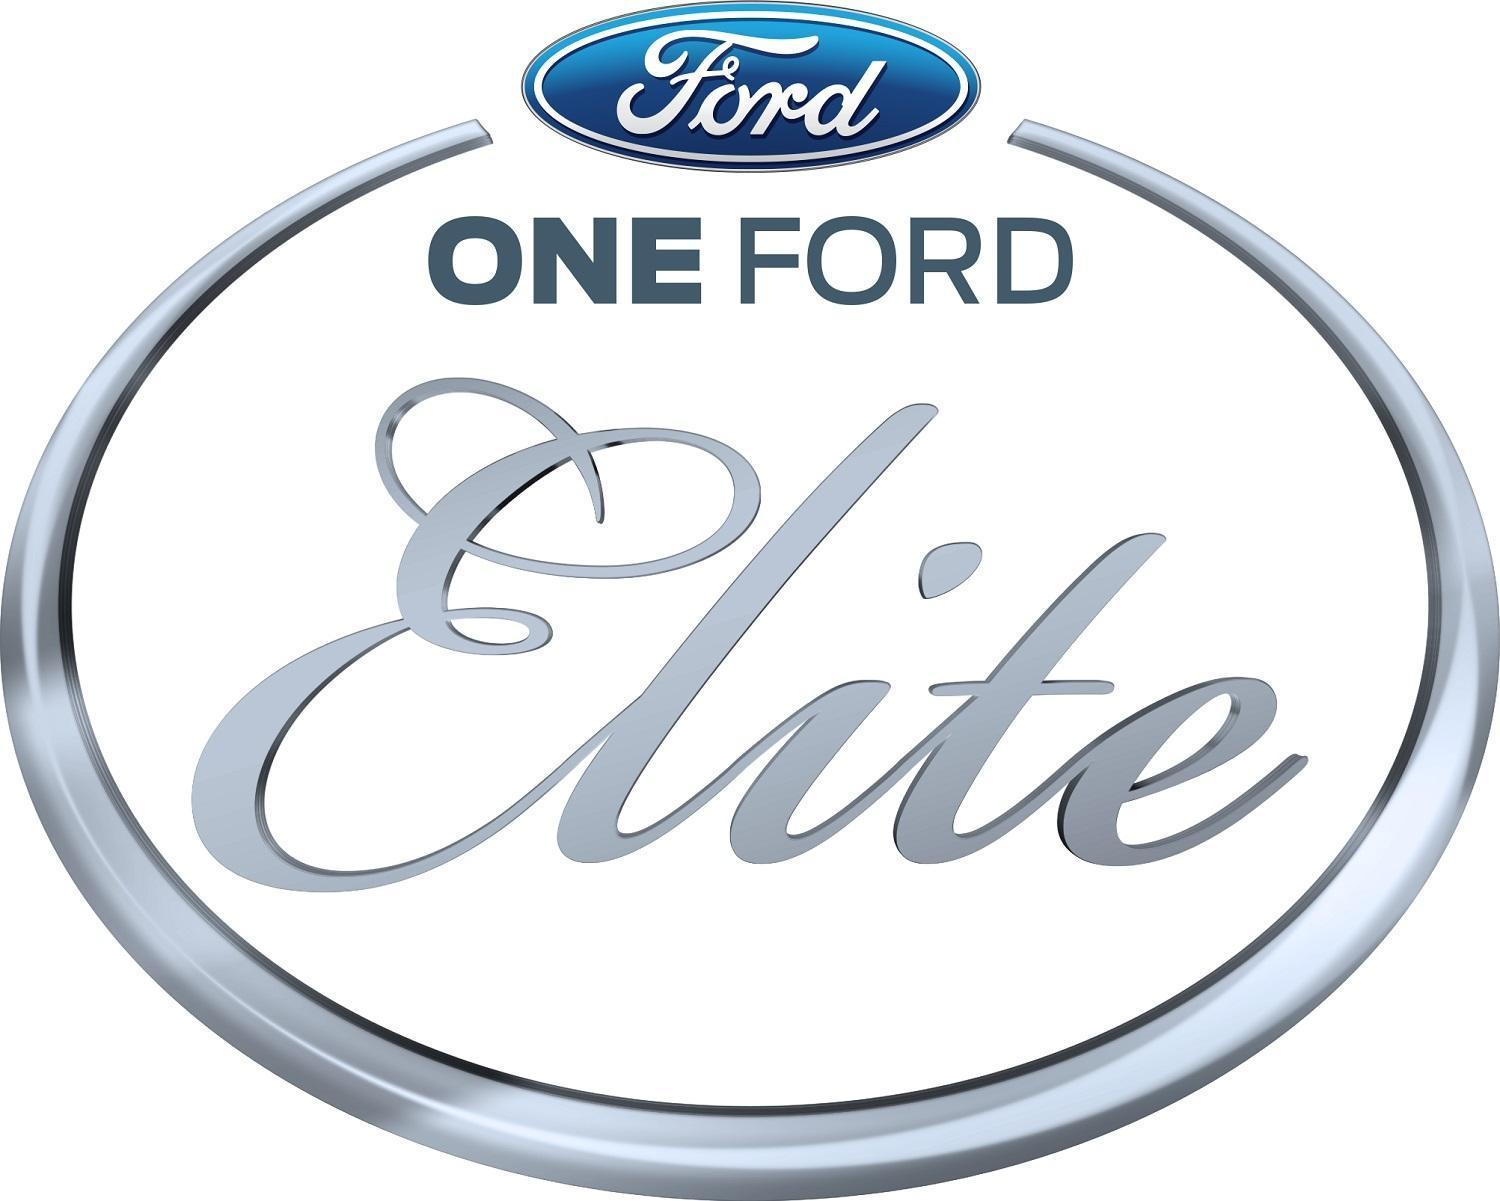 Ford parts los angeles serving the los angeles santa monica areas for your ford parts needs